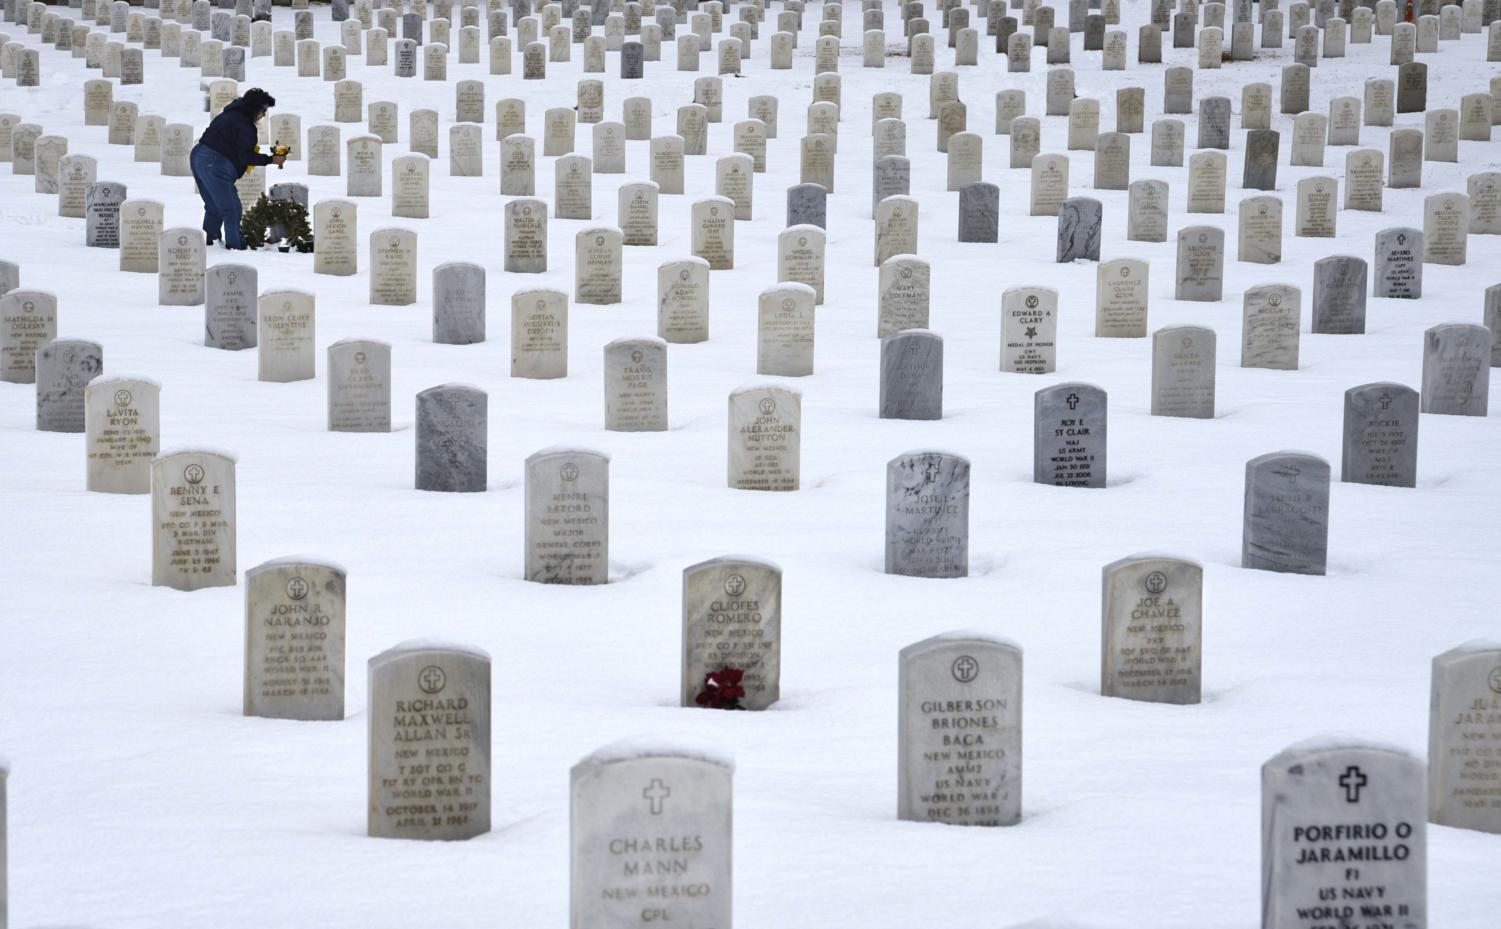 SANTA FE, NEW MEXICO - JANUARY 11, 2019: A woman places flowers on the grave of a loved one at the Santa Fe National Cemetery in Santa Fe, New Mexico, which is administered by the United States Department of Veterans Affairs. (Photo by Robert Alexander/Getty Images)